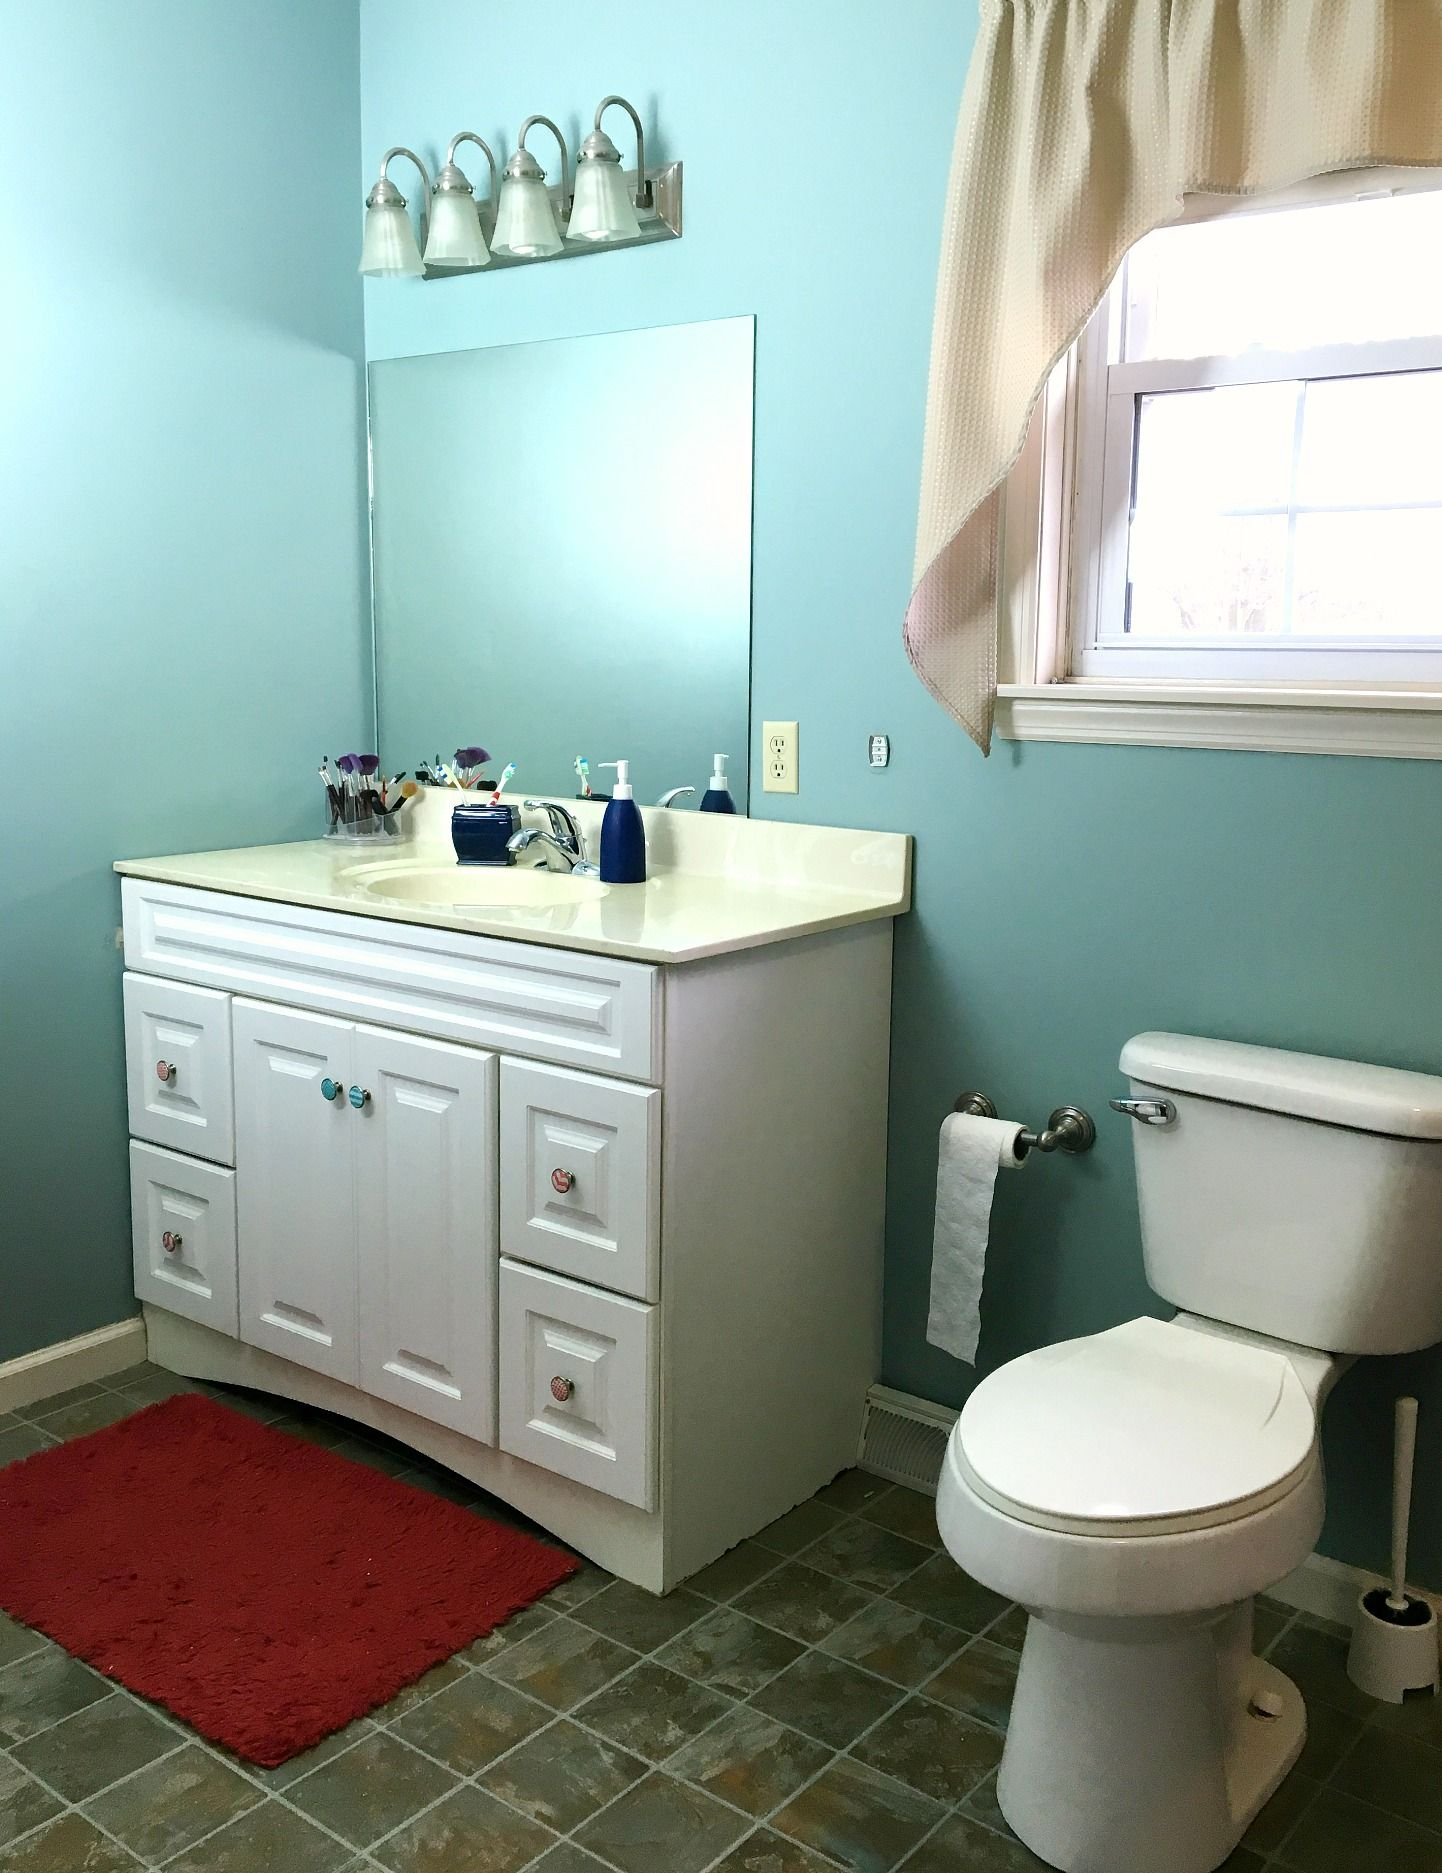 How to install a bathroom vanity | "|1442|1873|?|87ccf7ed8953f238e49f29fbe2ee6476|False|UNLIKELY|0.30142664909362793